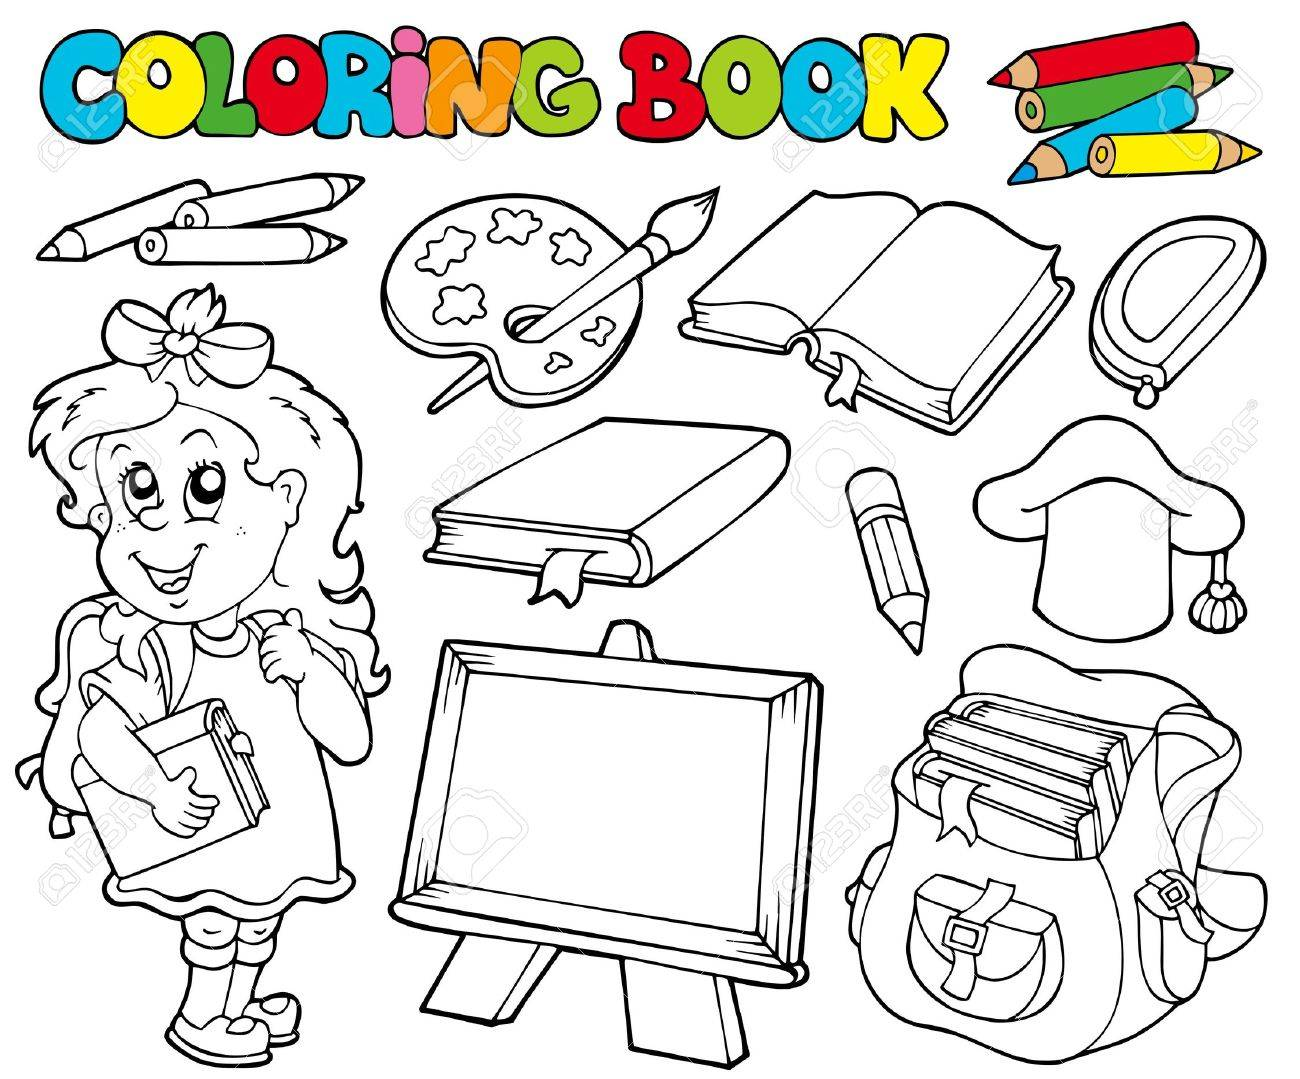 Coloring book school - Coloring Book With School Theme Illustration Stock Vector 7929416